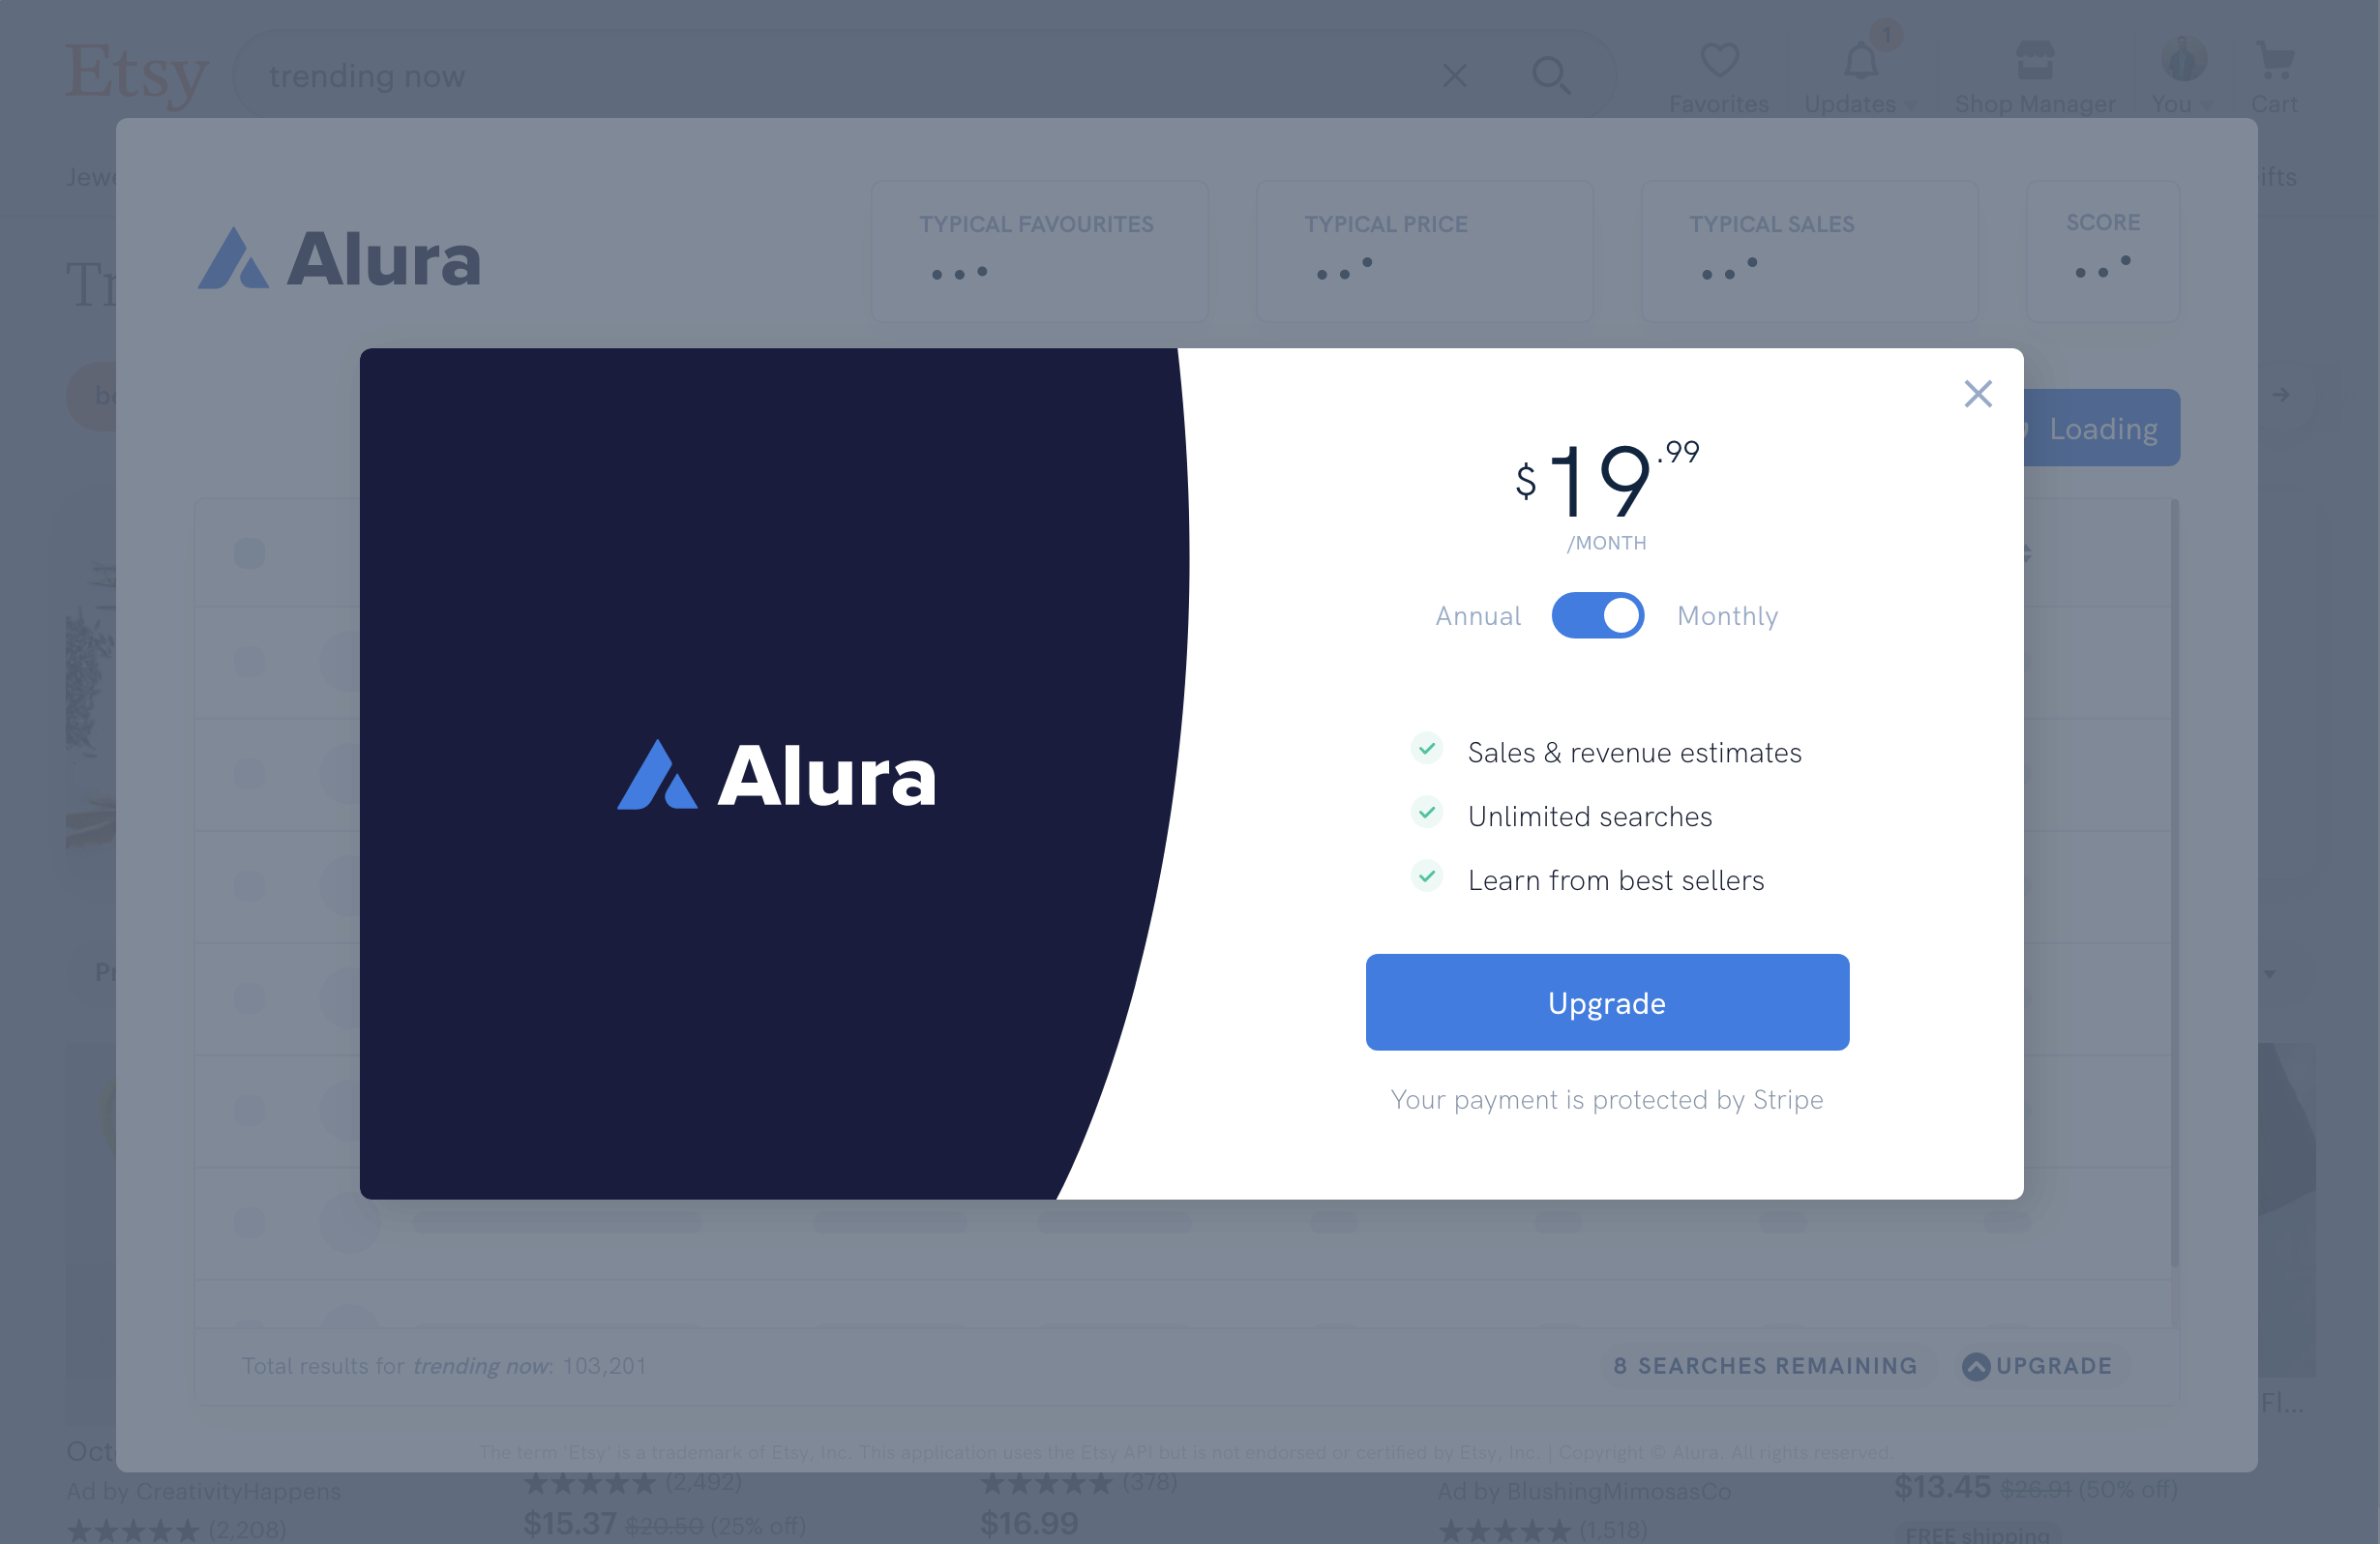 Alura pricing UI - 19.99 per month of 9.99 per month billed annually